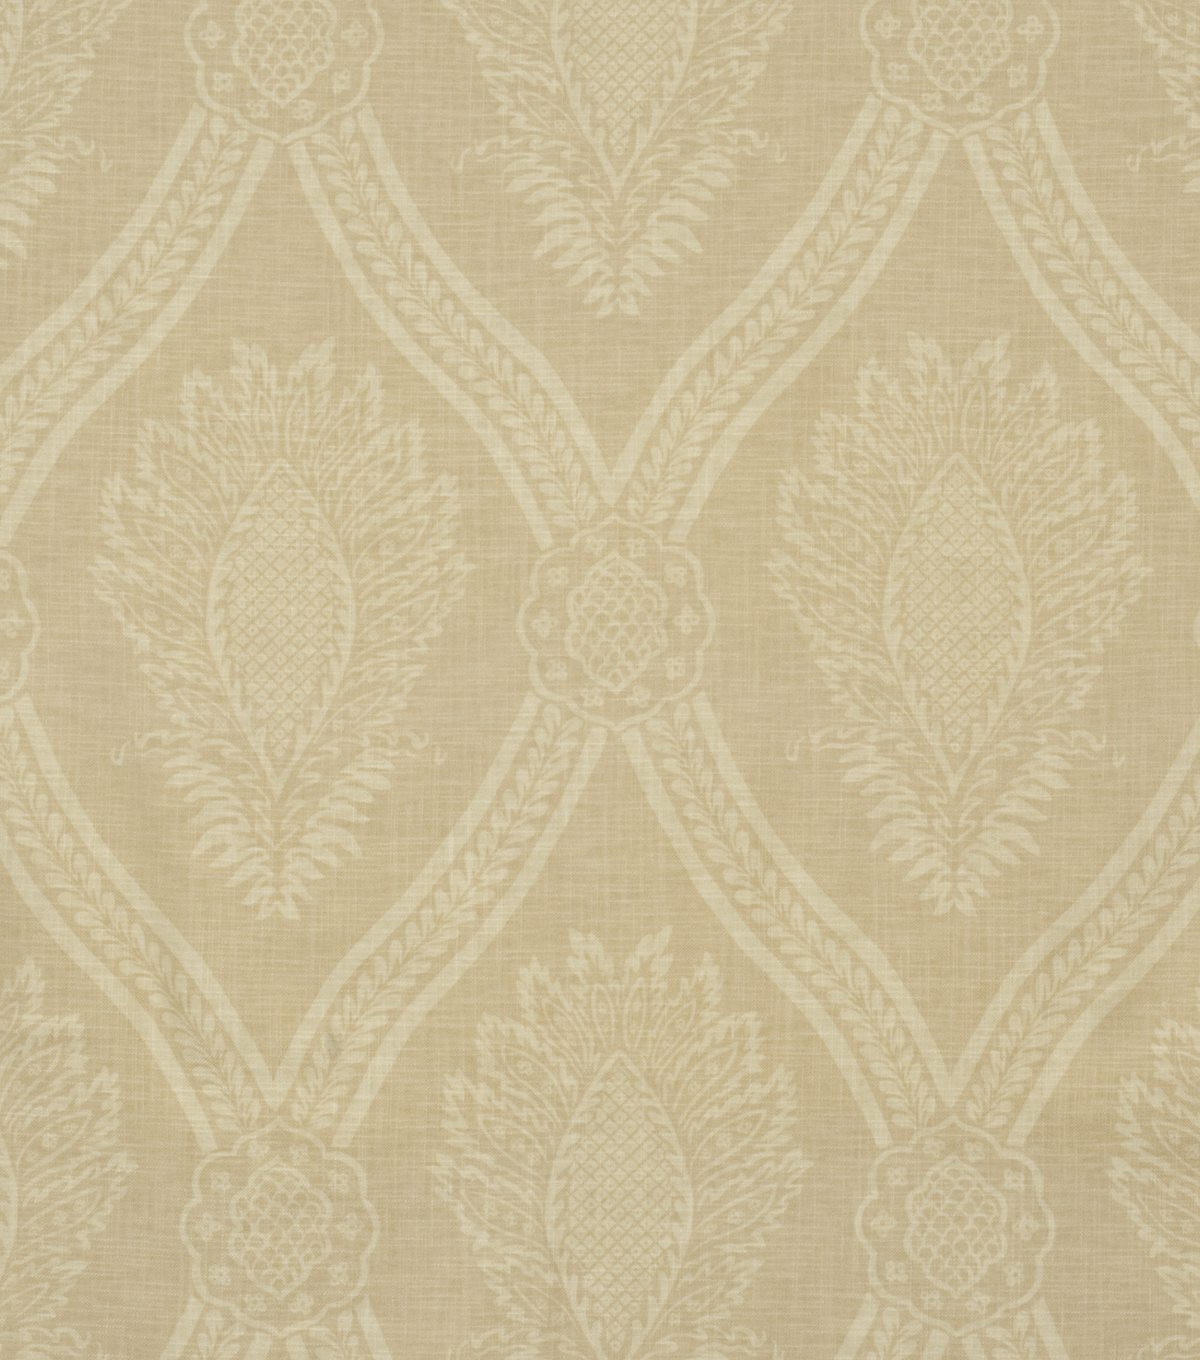 Home Decor 8\u0022x8\u0022 Fabric Swatch-Jaclyn Smith Hollywood-Oatmeal